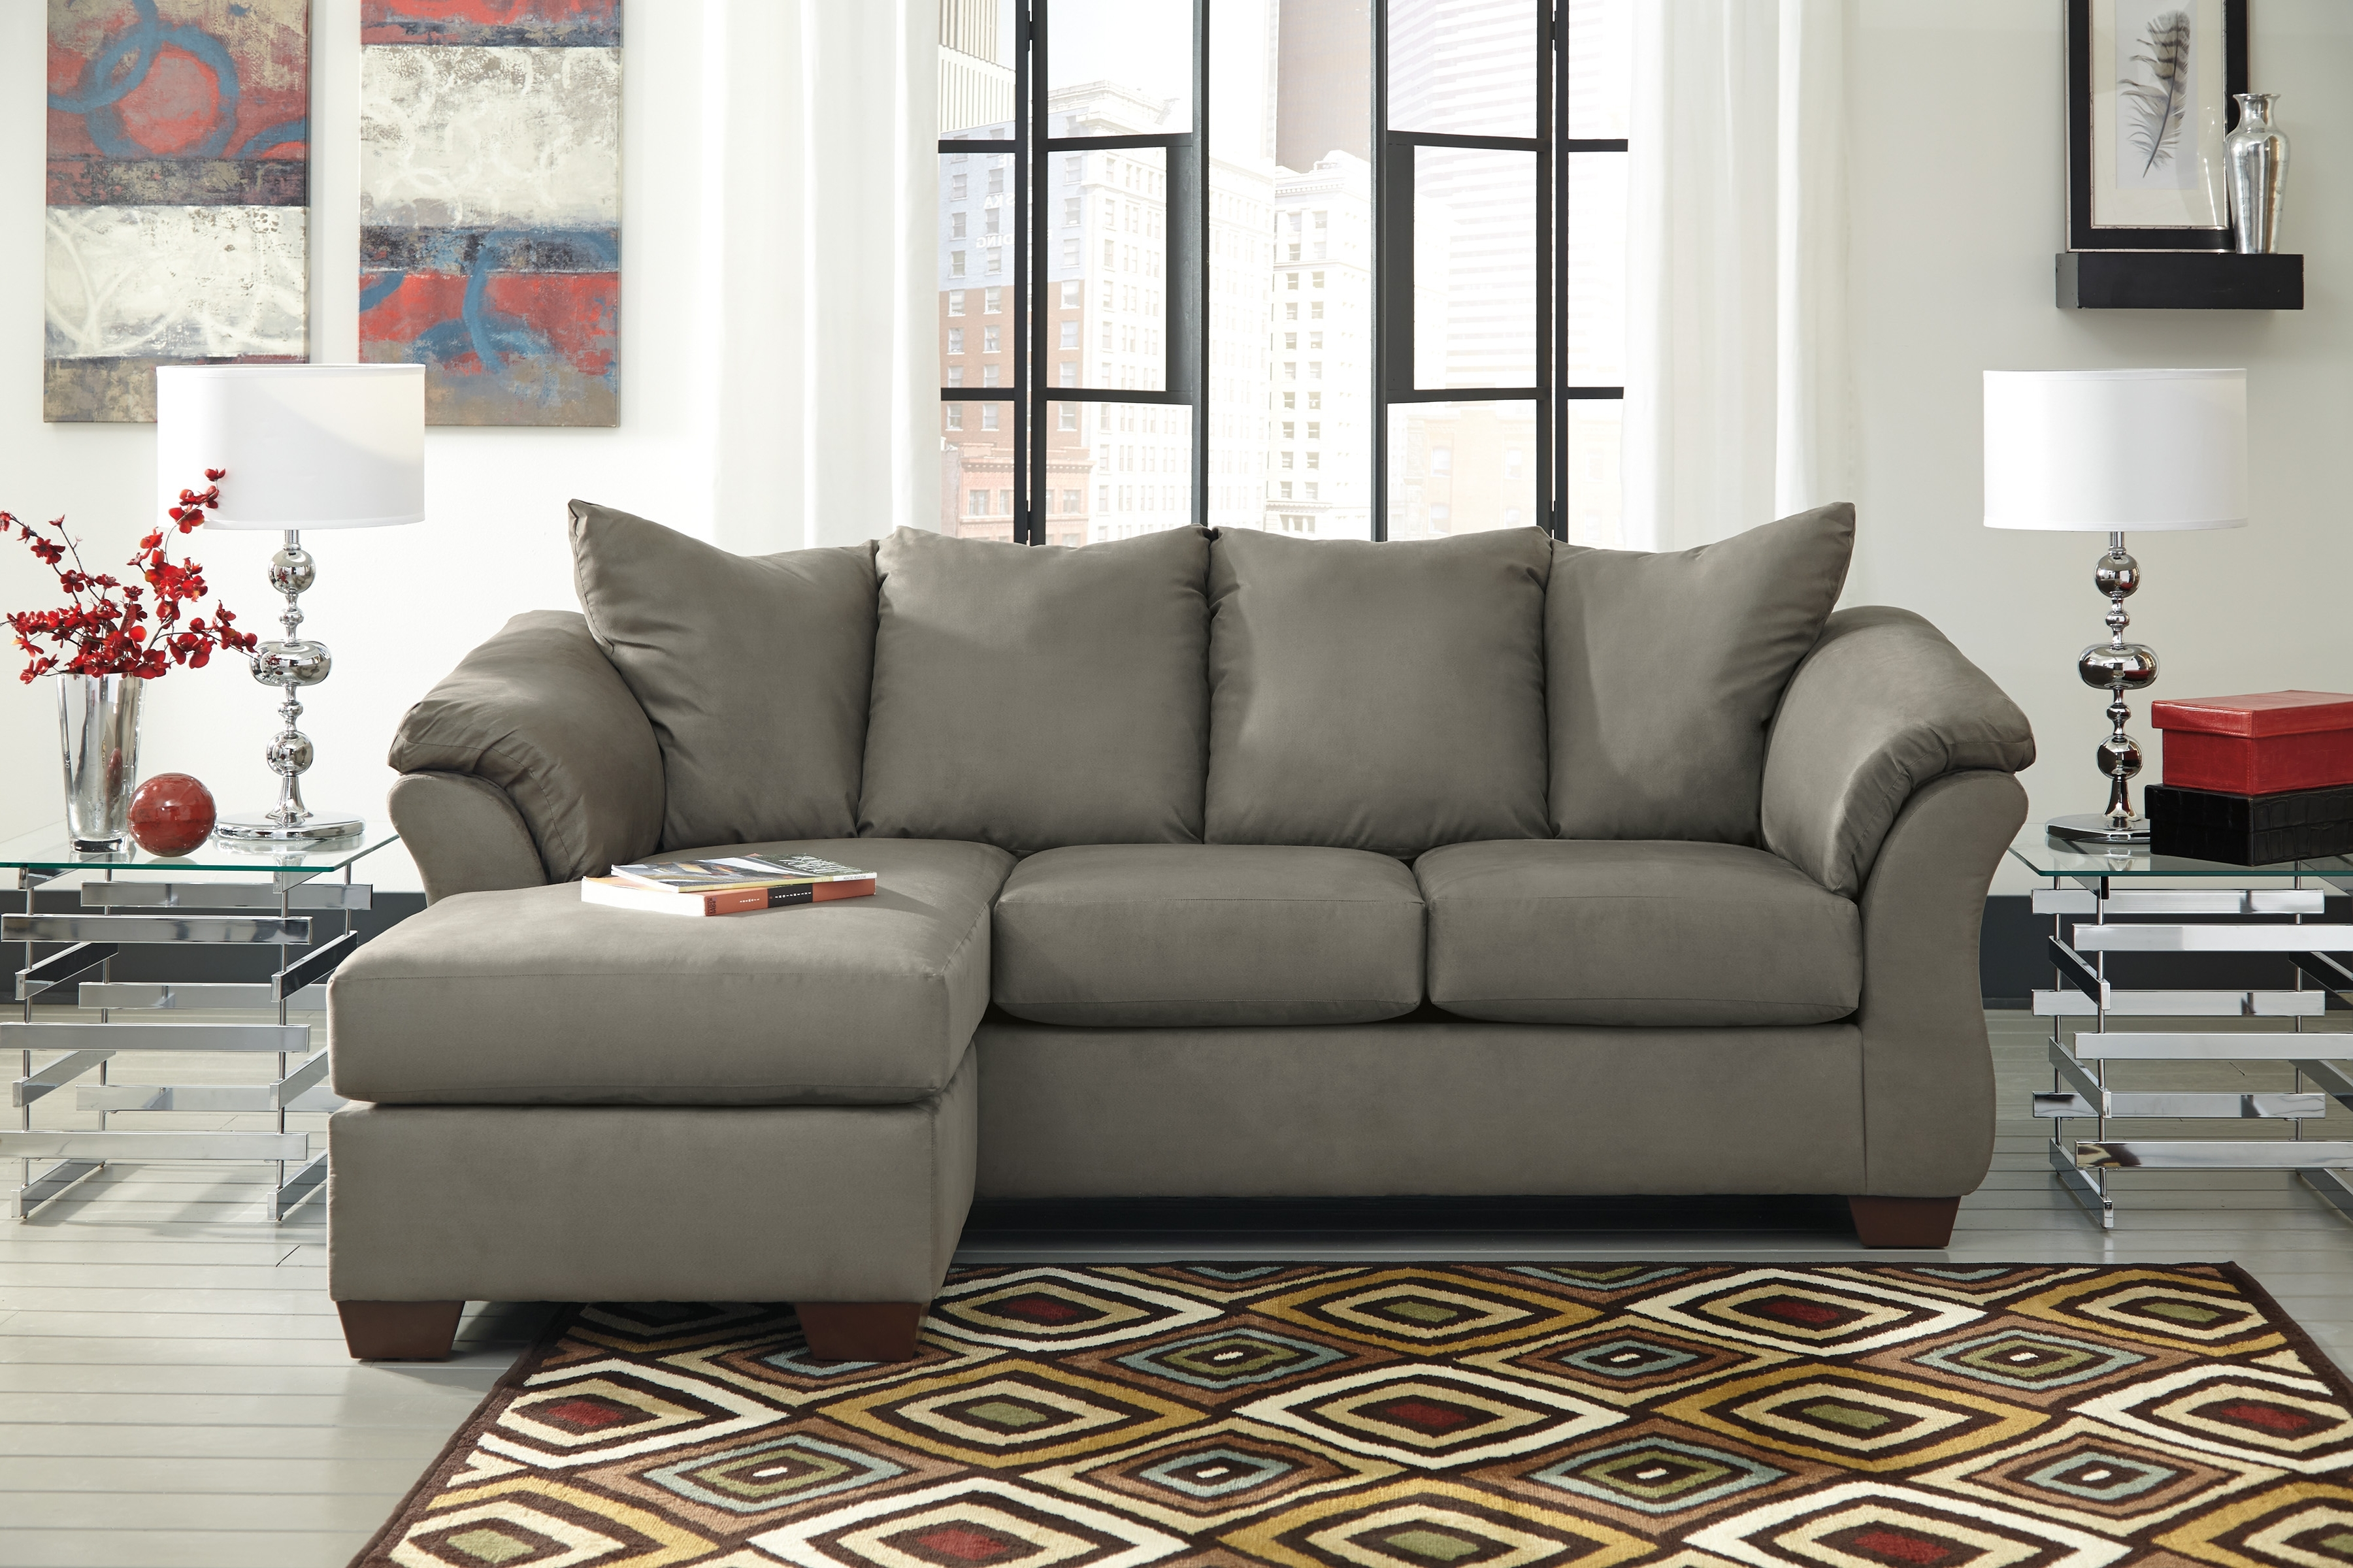 Current Unique Ashley Furniture Sectional Sleeper Sofa 60 For 9 Intended For Ashley Tufted Sofas (View 11 of 20)